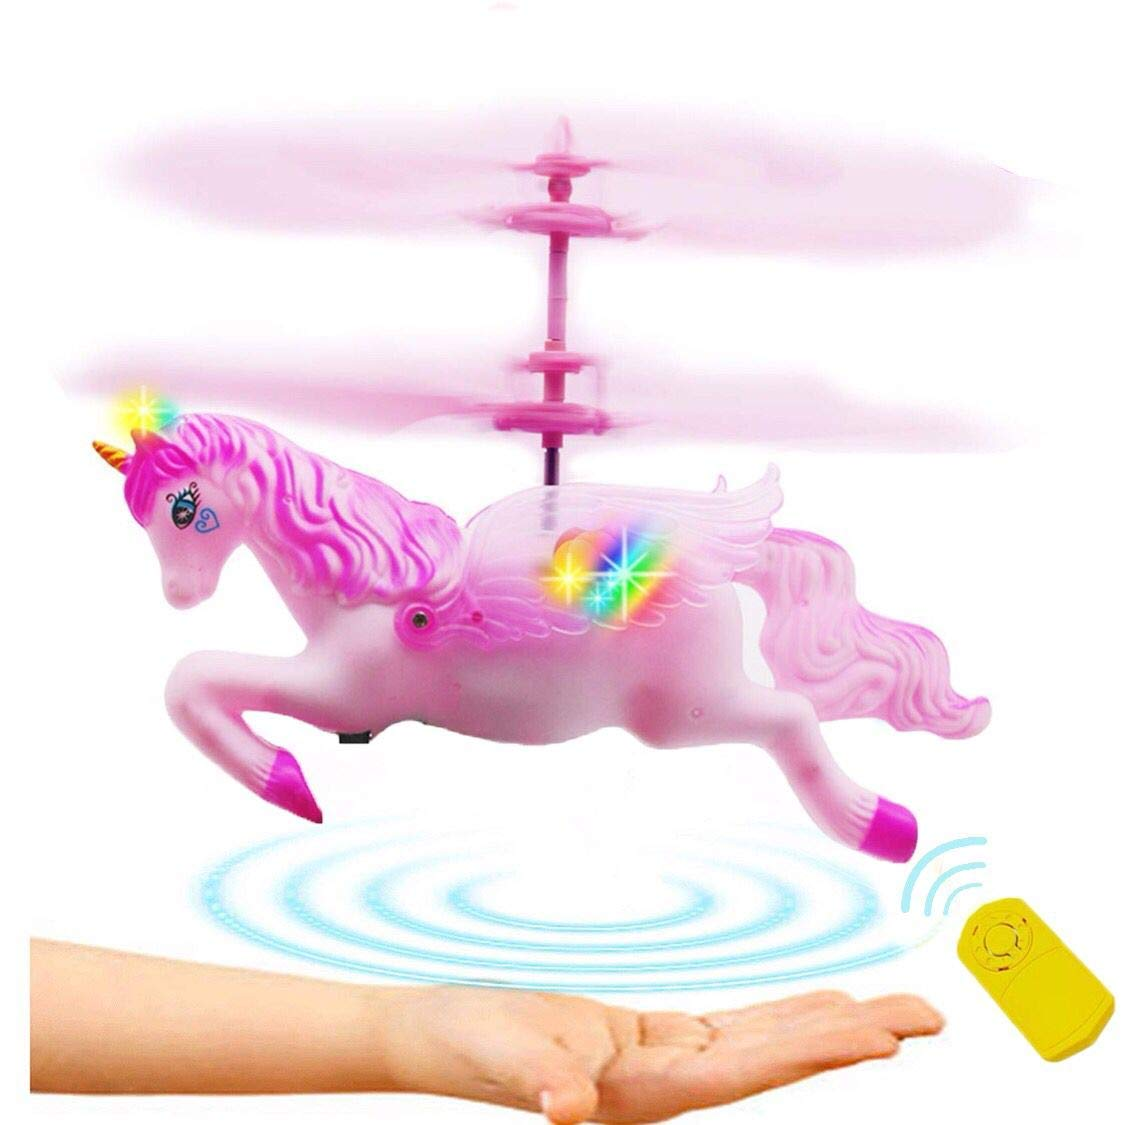 Anda Unicorn Toy Gift Girl 6 Years Old, Pink Mini RC and Hand Control Flight Helicopter Unicorn Fairy Tale Doll Birthday Christmas Party Supplies.(Flying Unicorn) by Anda